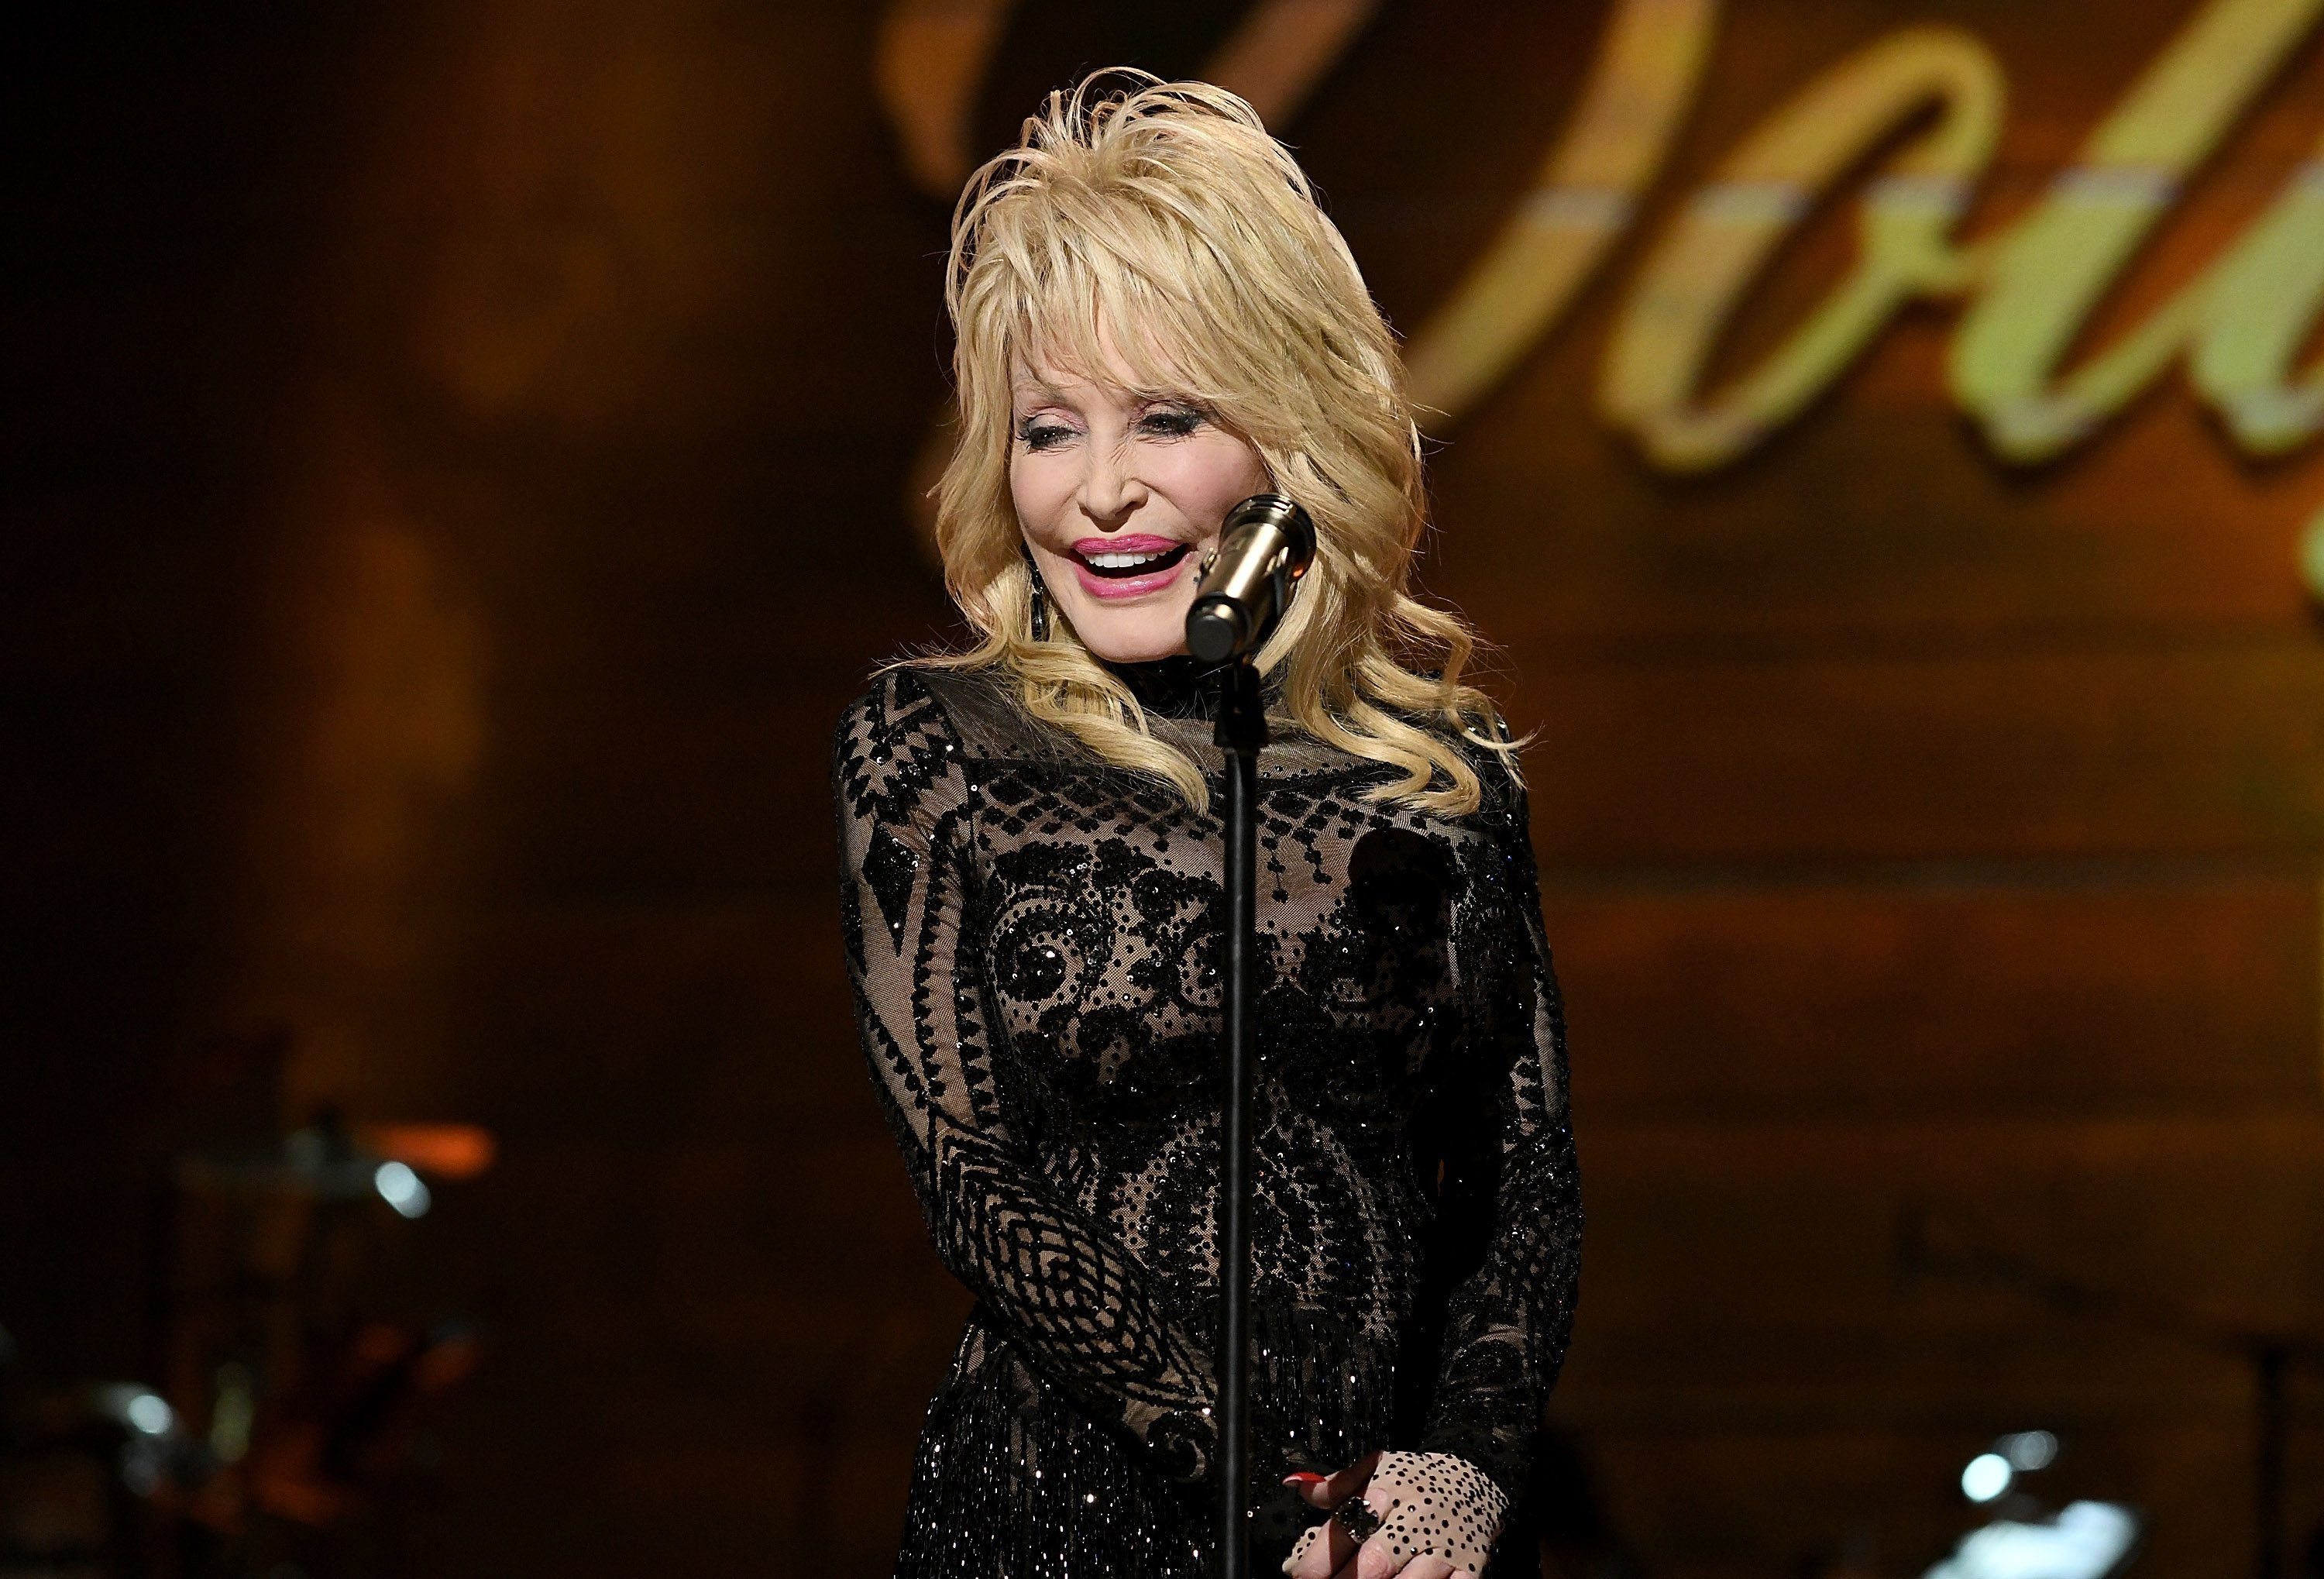 Dolly Parton accepts the 2019 MusiCares Person of the Year Award on February 8, 2019. | Photo: Getty Images